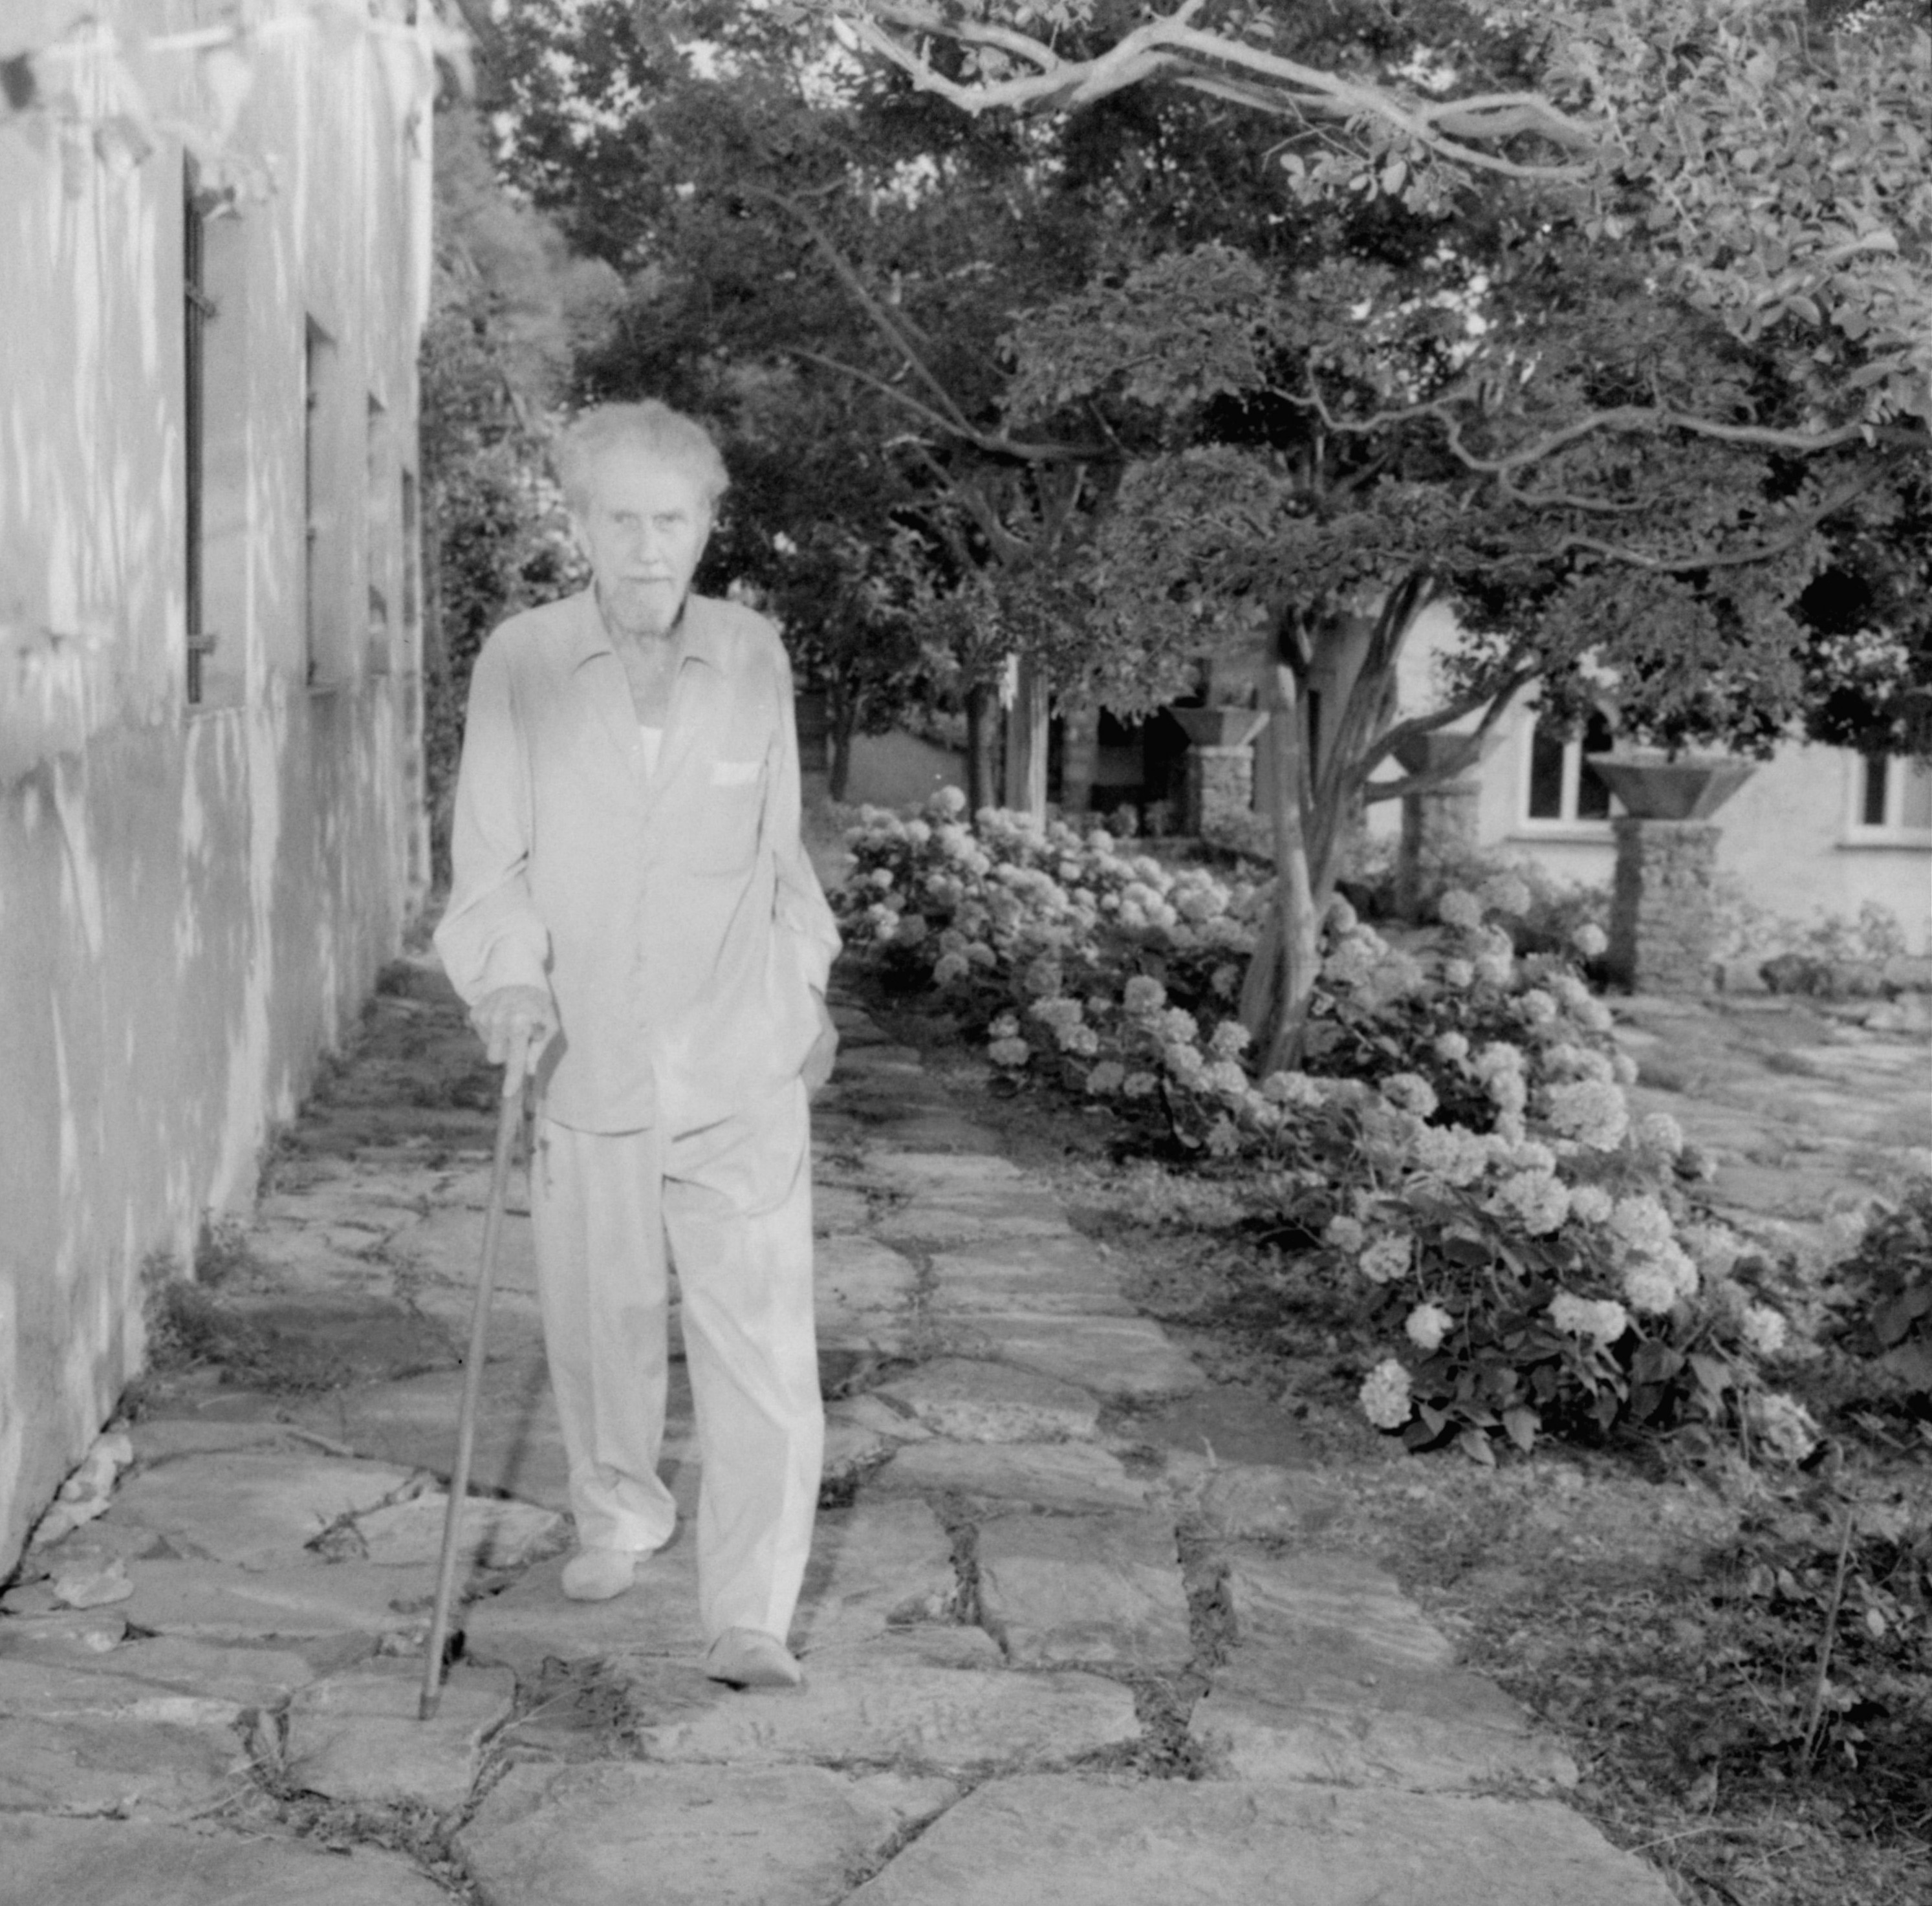 Ezra Pound, American poet and composer, pictured in the garden of his villa at the Italian riviera resort of Rapallo. July 30, 1963